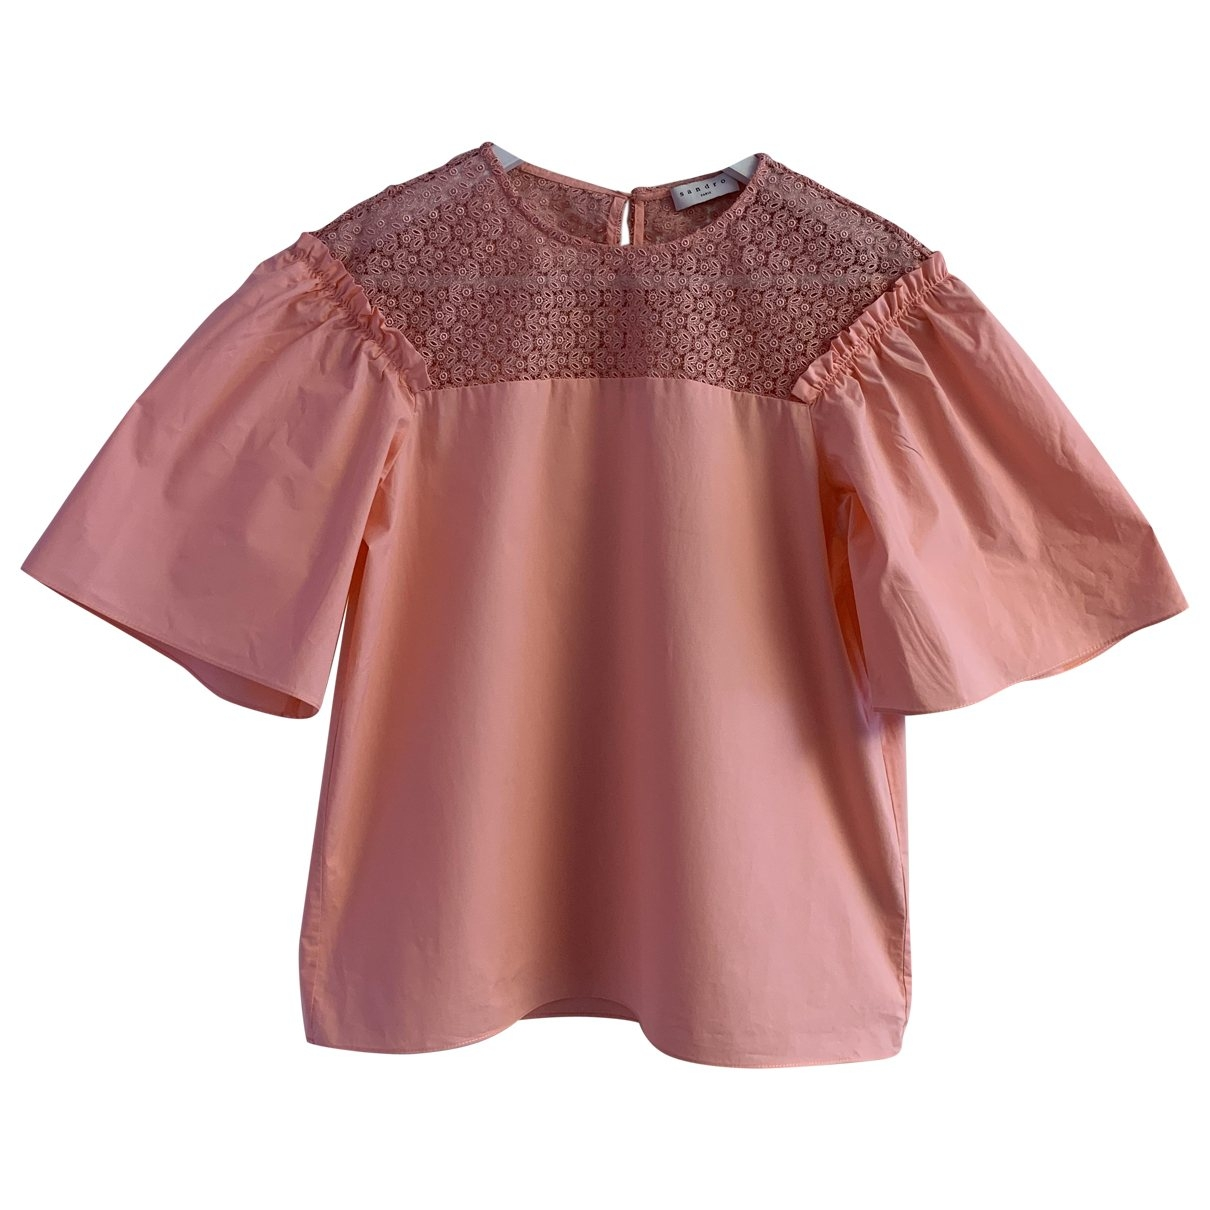 Sandro \N Pink Cotton  top for Women 1 US